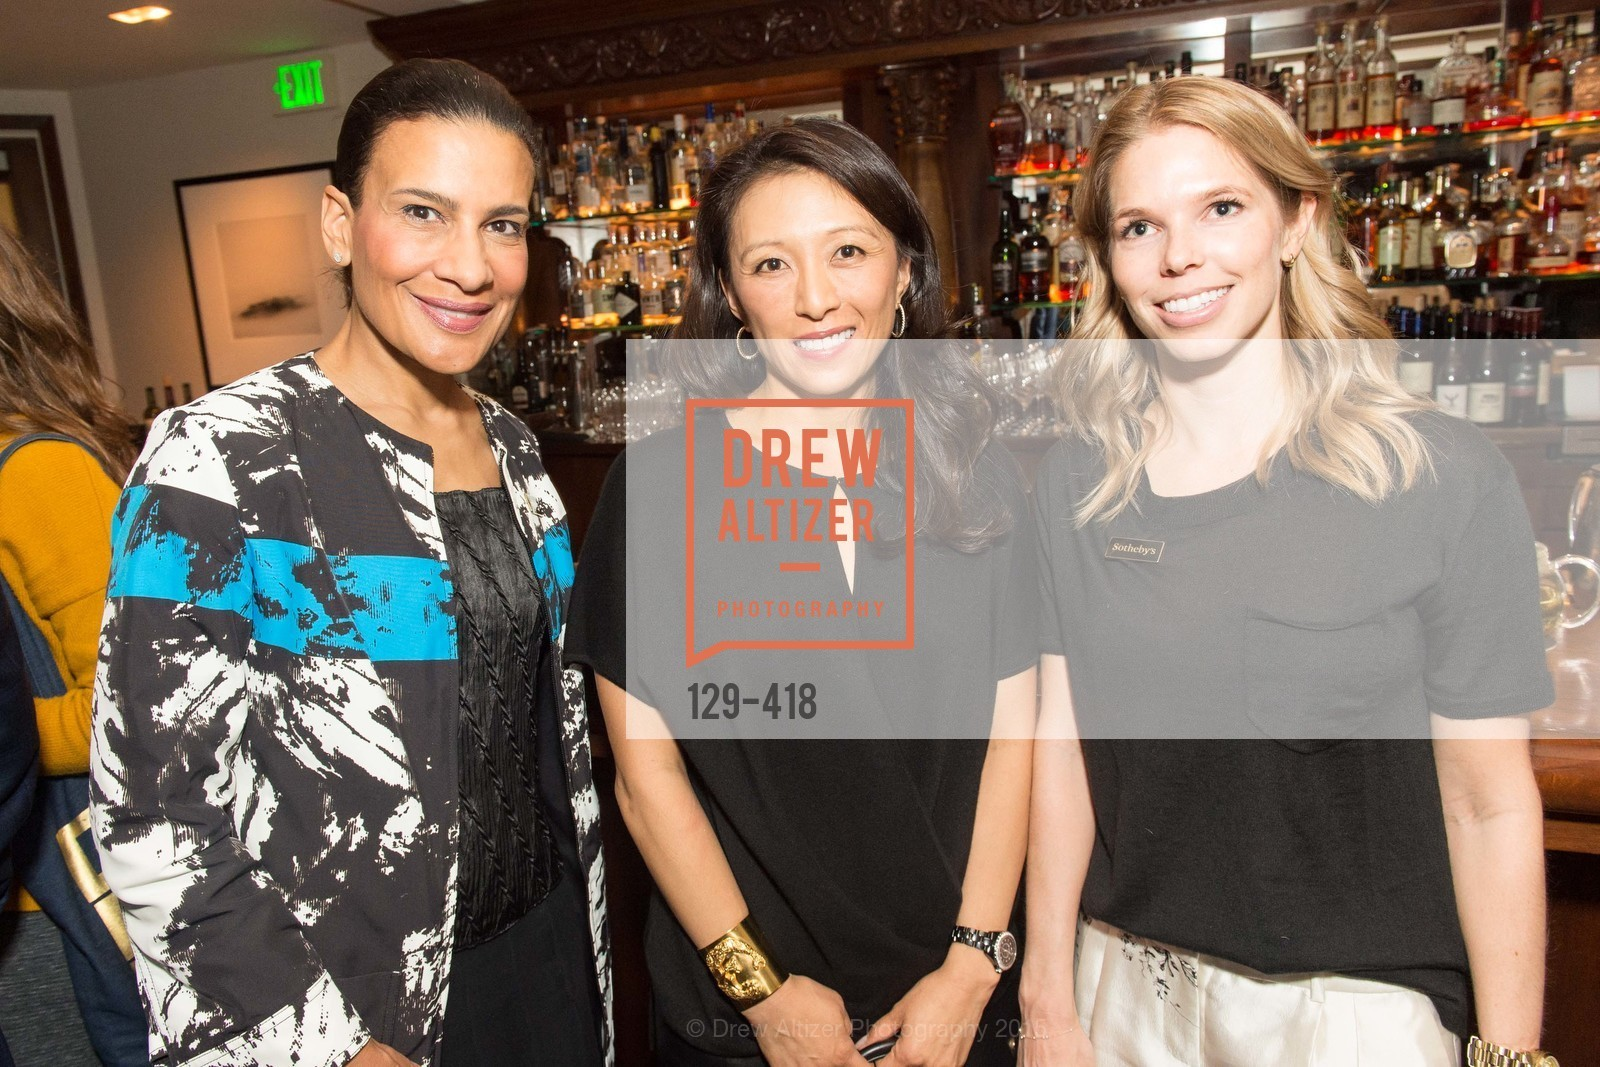 Andrea Fiuczynsky, Cori Bates, Courtney Kremers, Artsy and Sotheby's Village Pub Dinner, Village Pub, October 27th, 2015